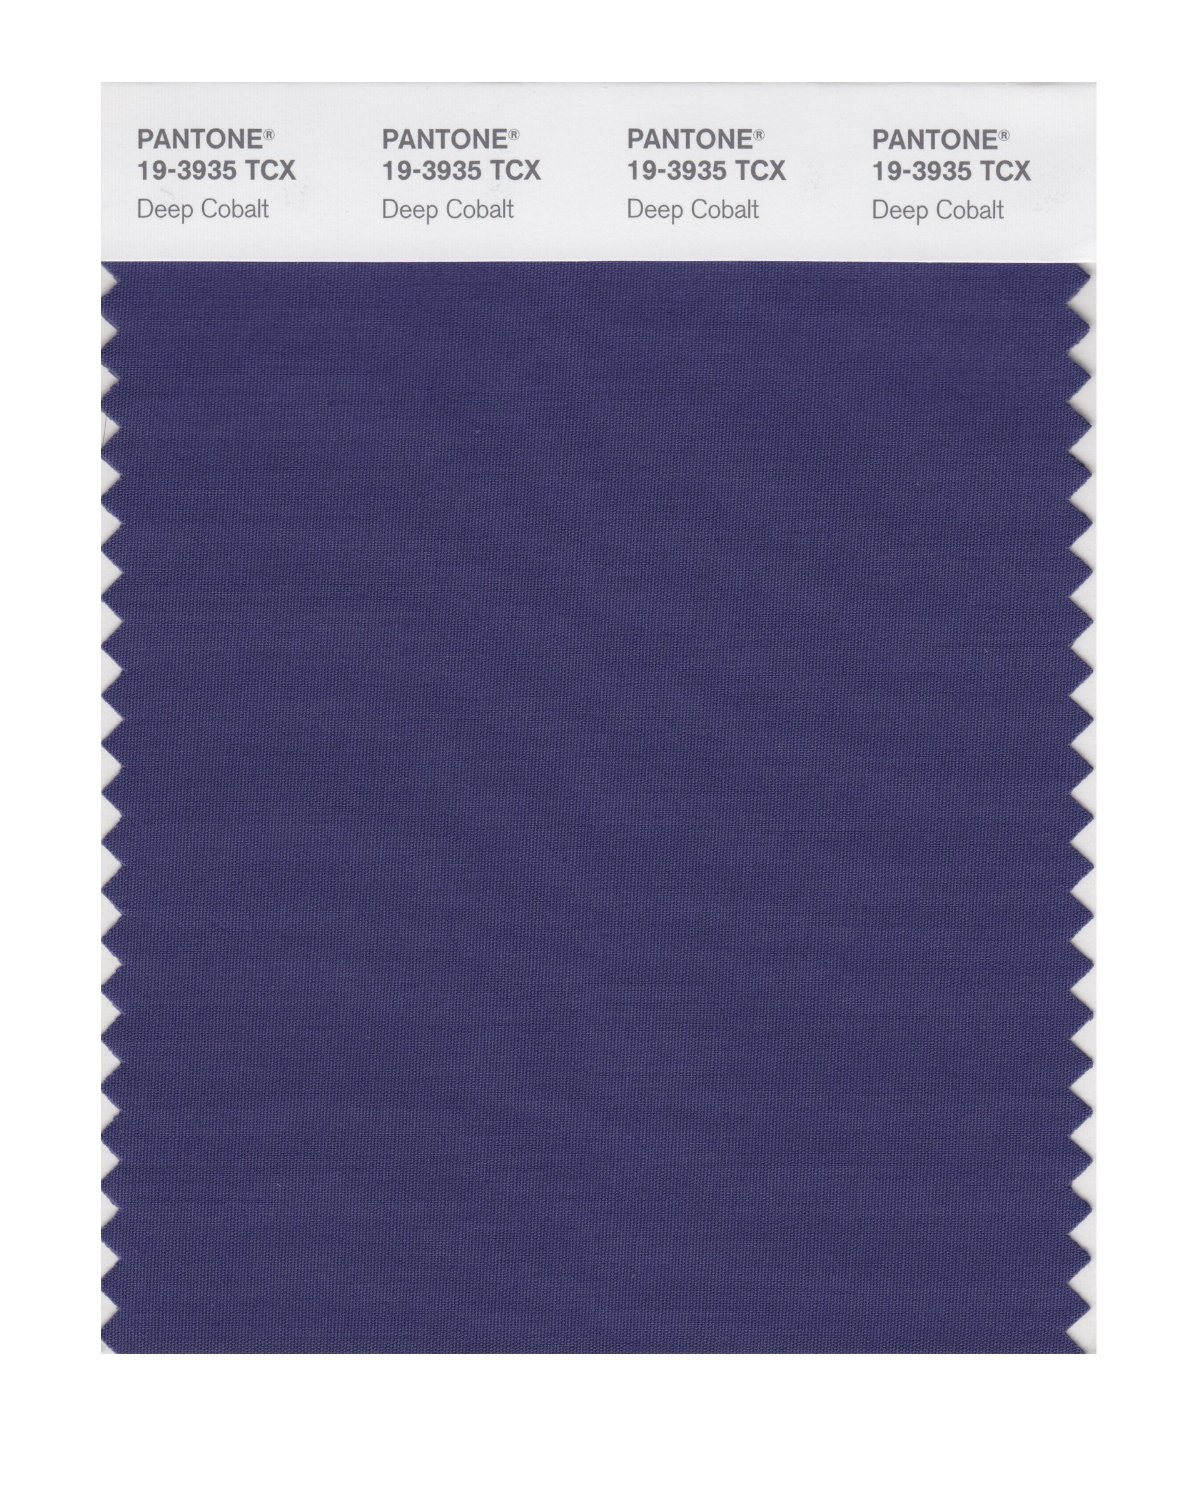 Pantone Smart Swatch 19-3935 Deep Cobalt